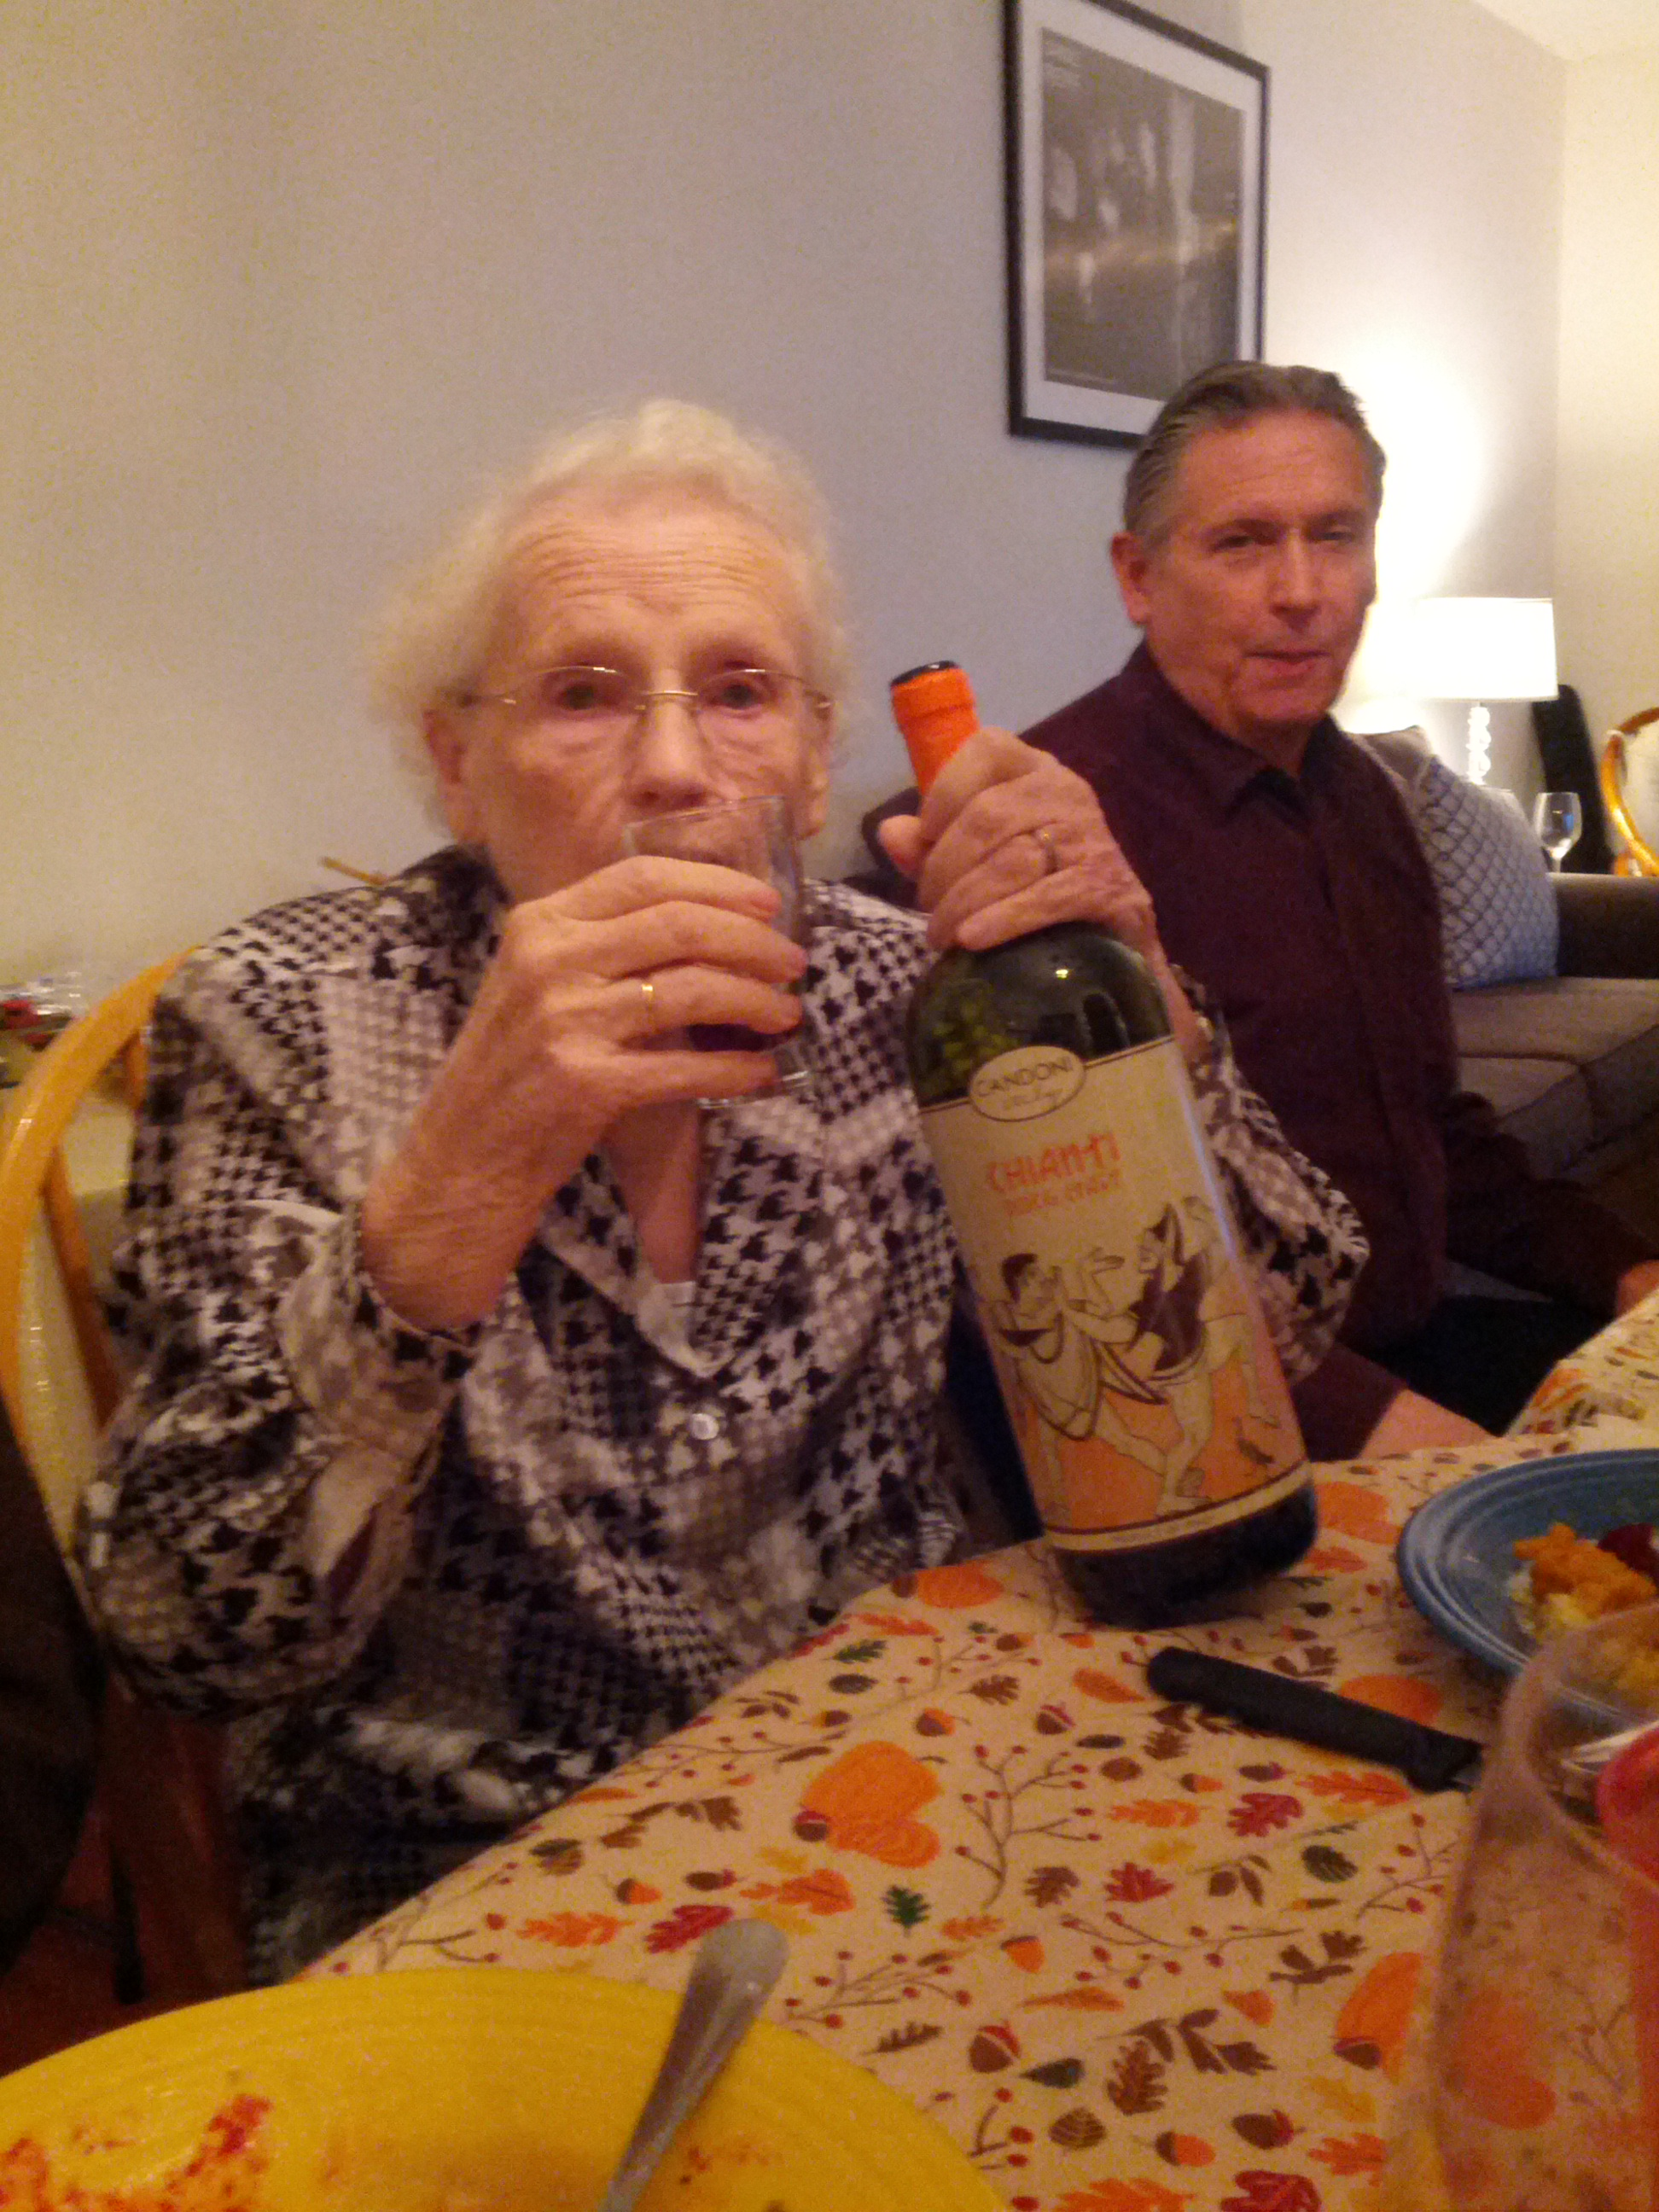 grandma drinks wine on thanksgiving